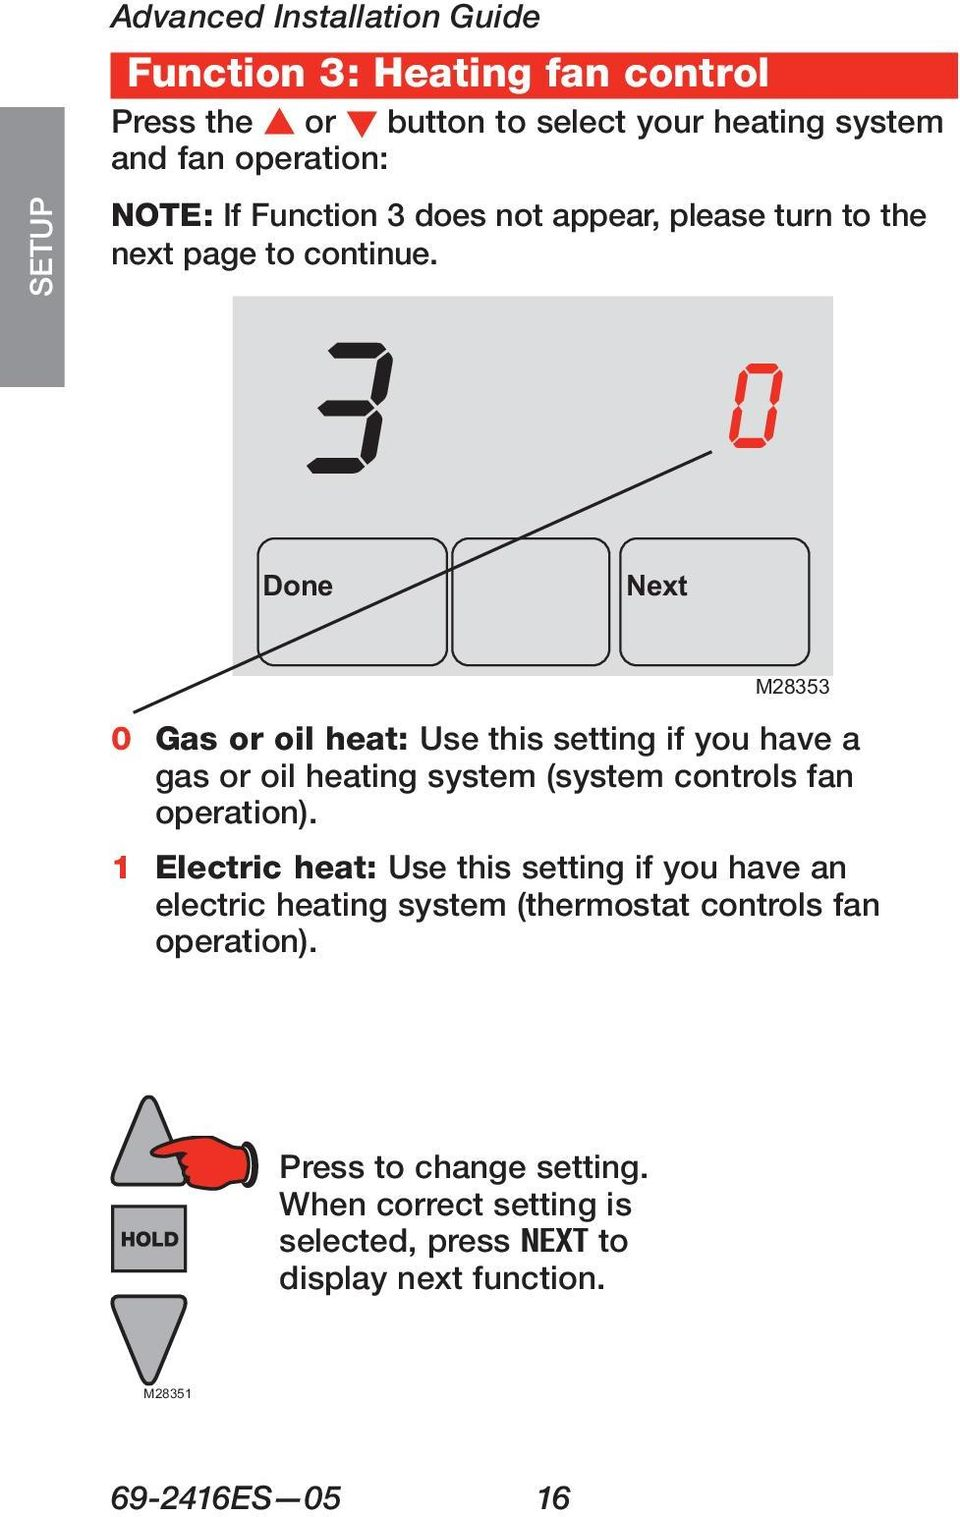 Done 3 0 Next M28353 ASSISTANCE 0 Gas or oil heat: Use this setting if you have a gas or oil heating system (system controls fan operation).